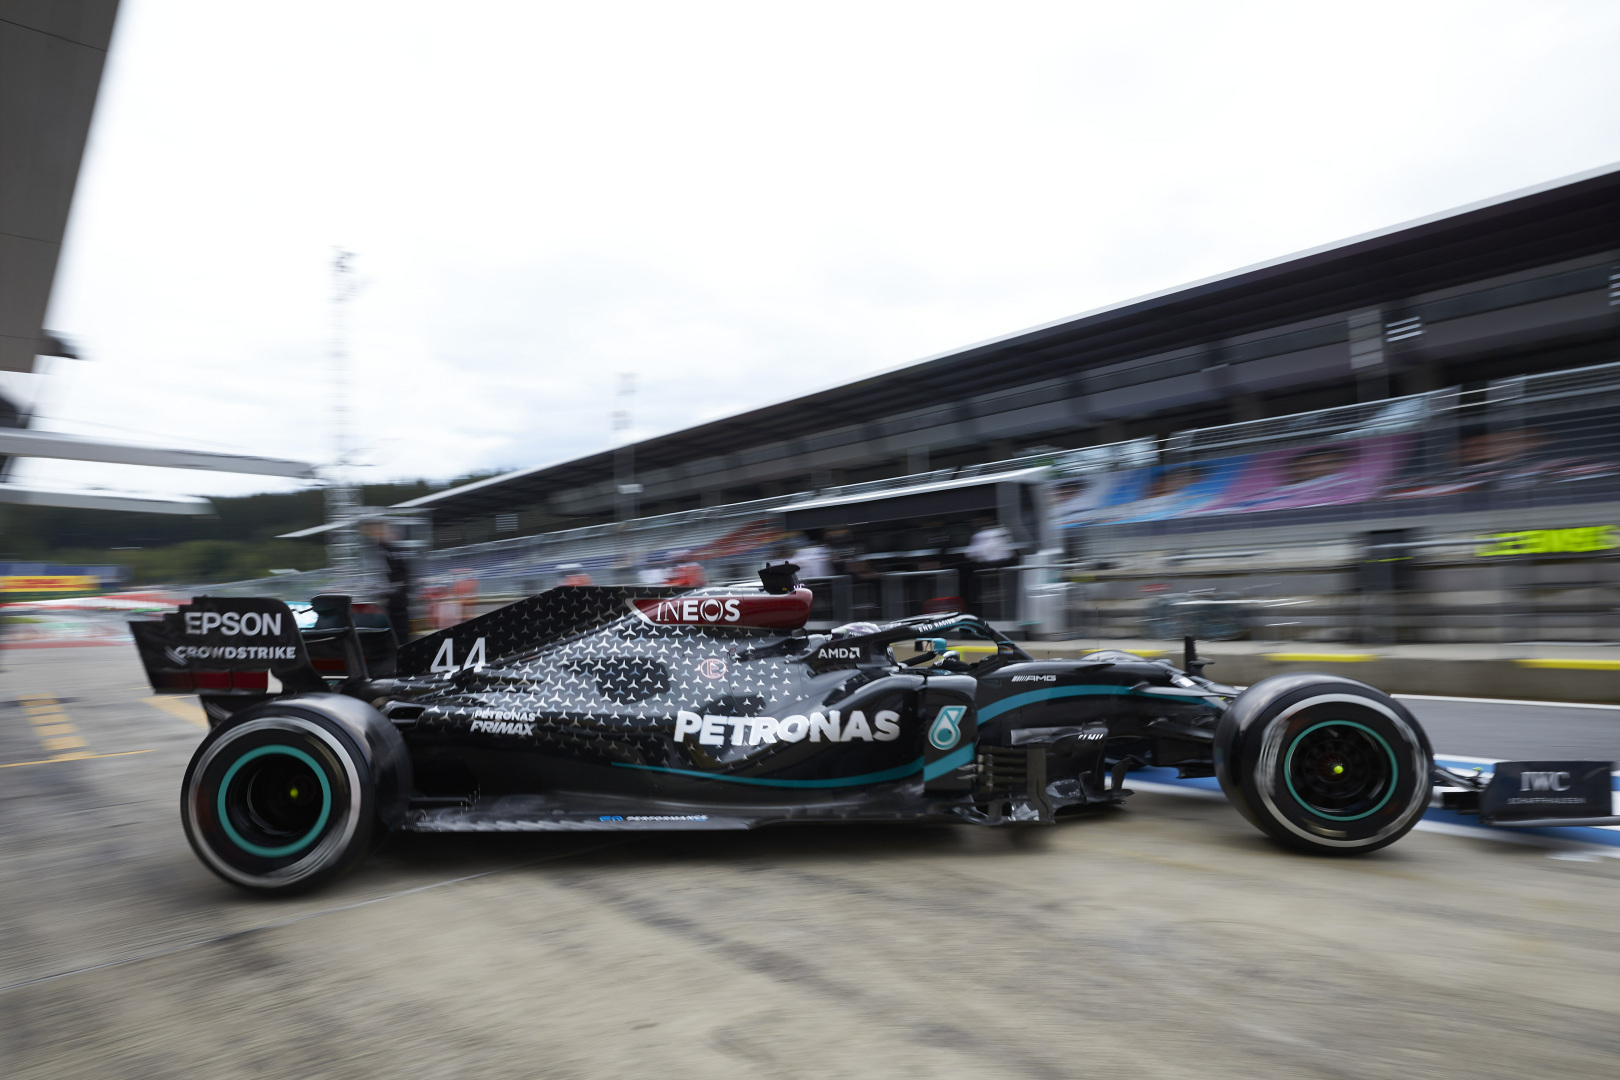 Mercedes has 'new components' to help solve gearbox issues - F1i.com